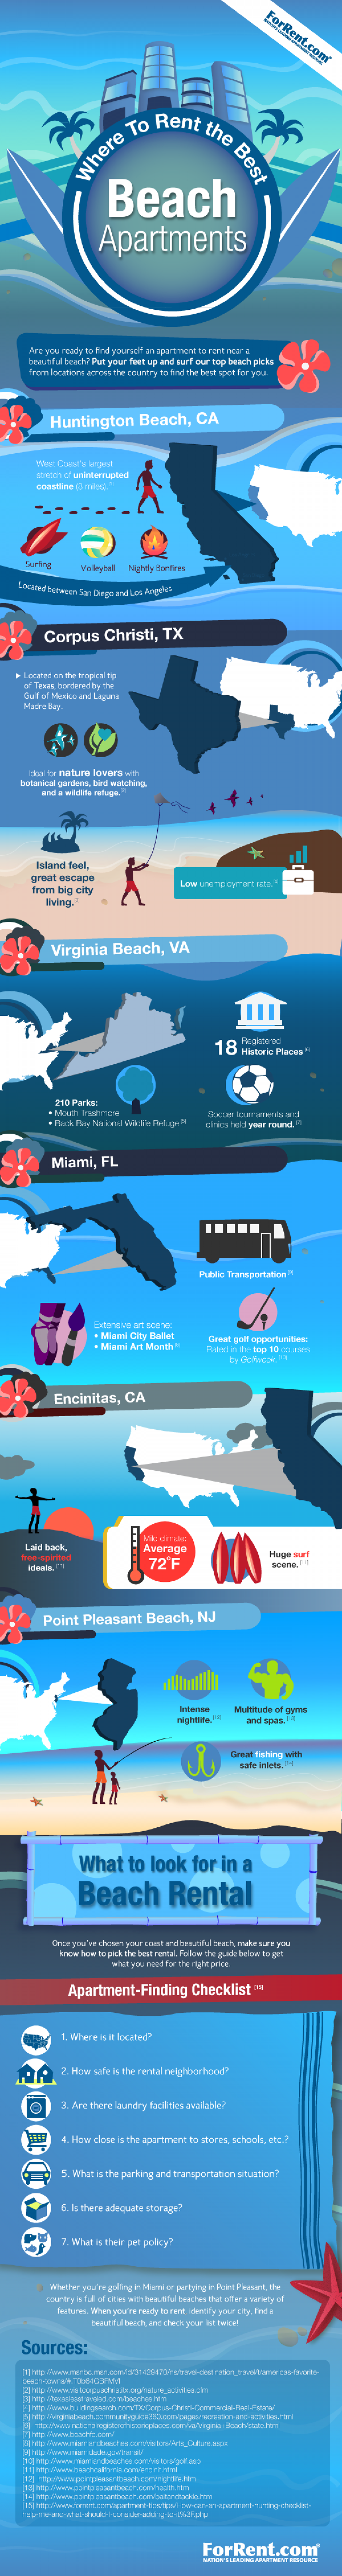 Where to Rent the Best Beach Apartments Infographic